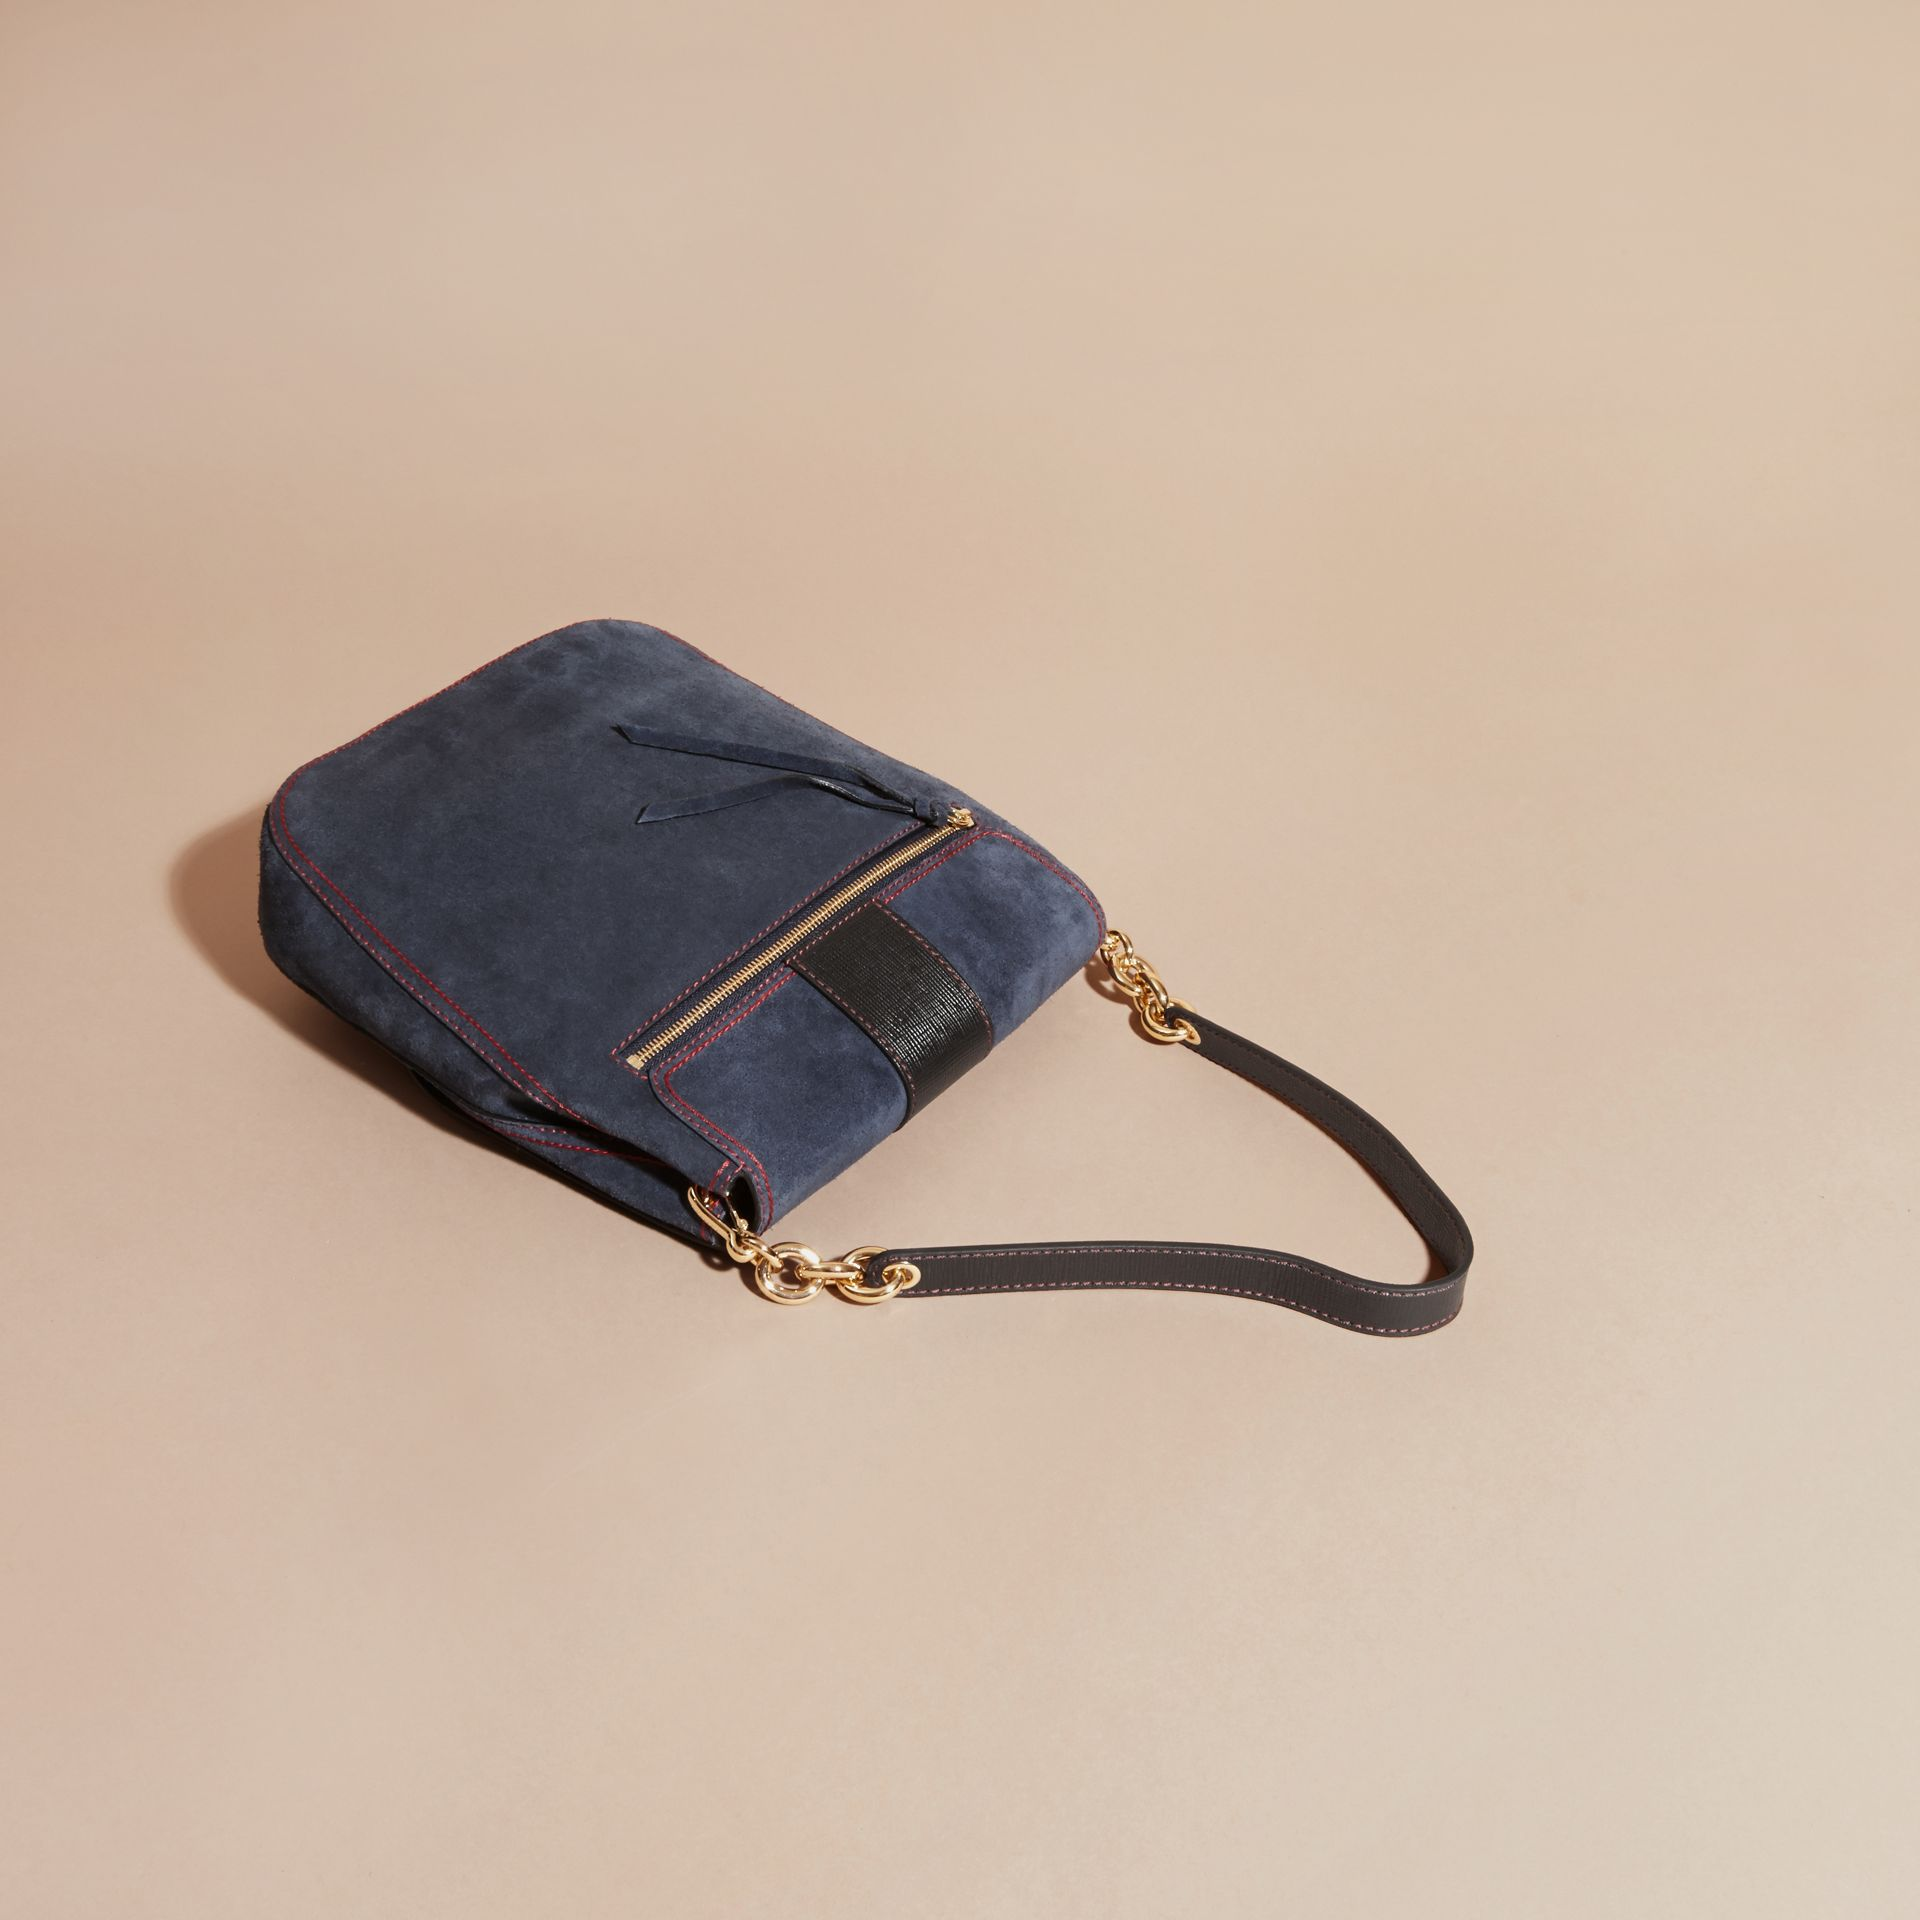 Navy The Buckle Satchel in Suede with Topstitching Navy - gallery image 4